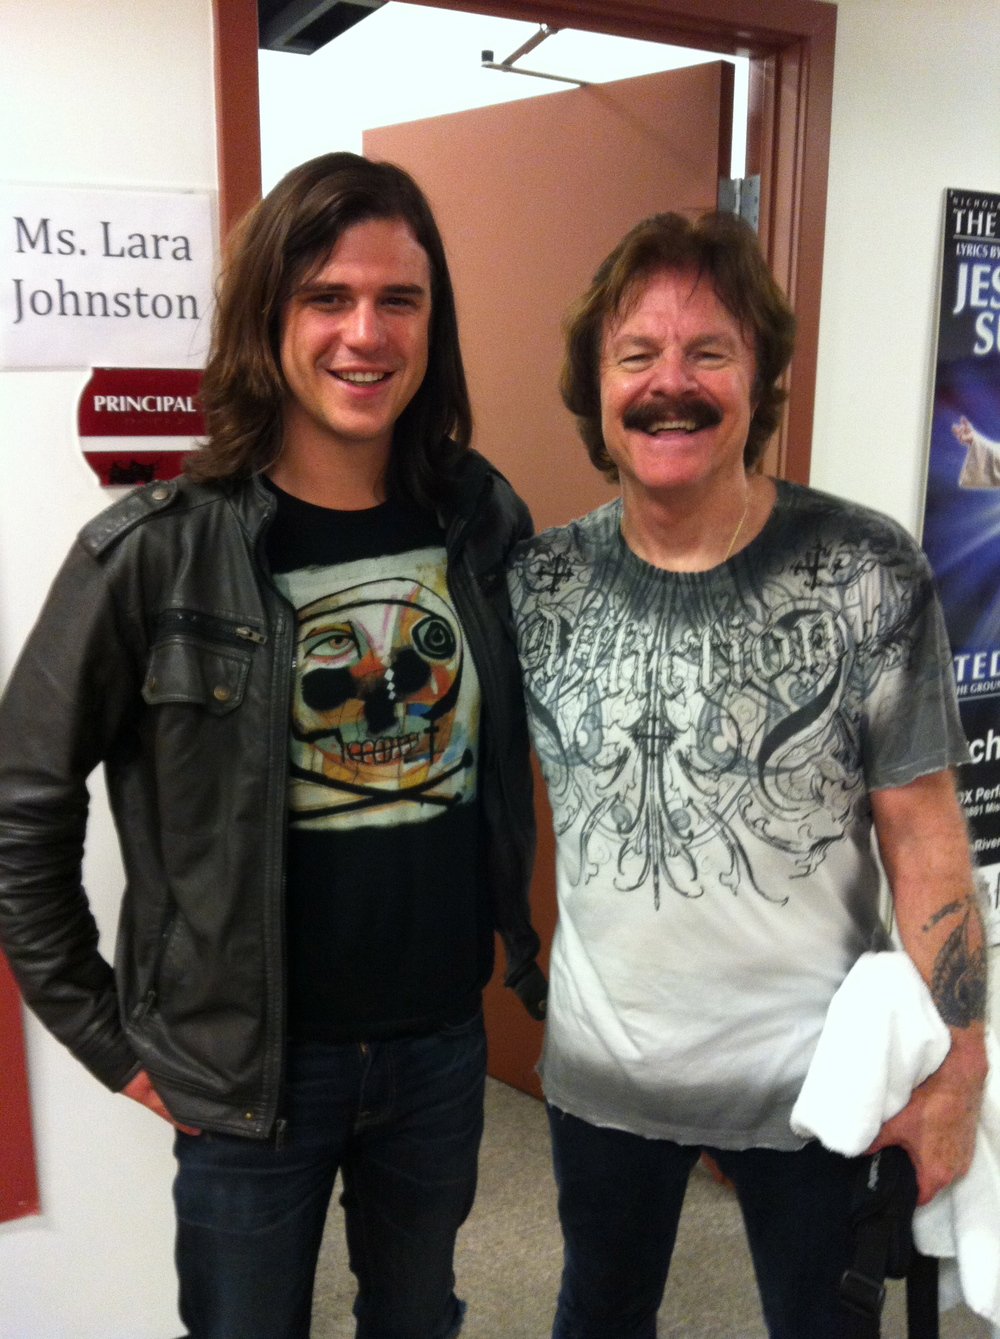 Tom Johnston of Doobie Bros